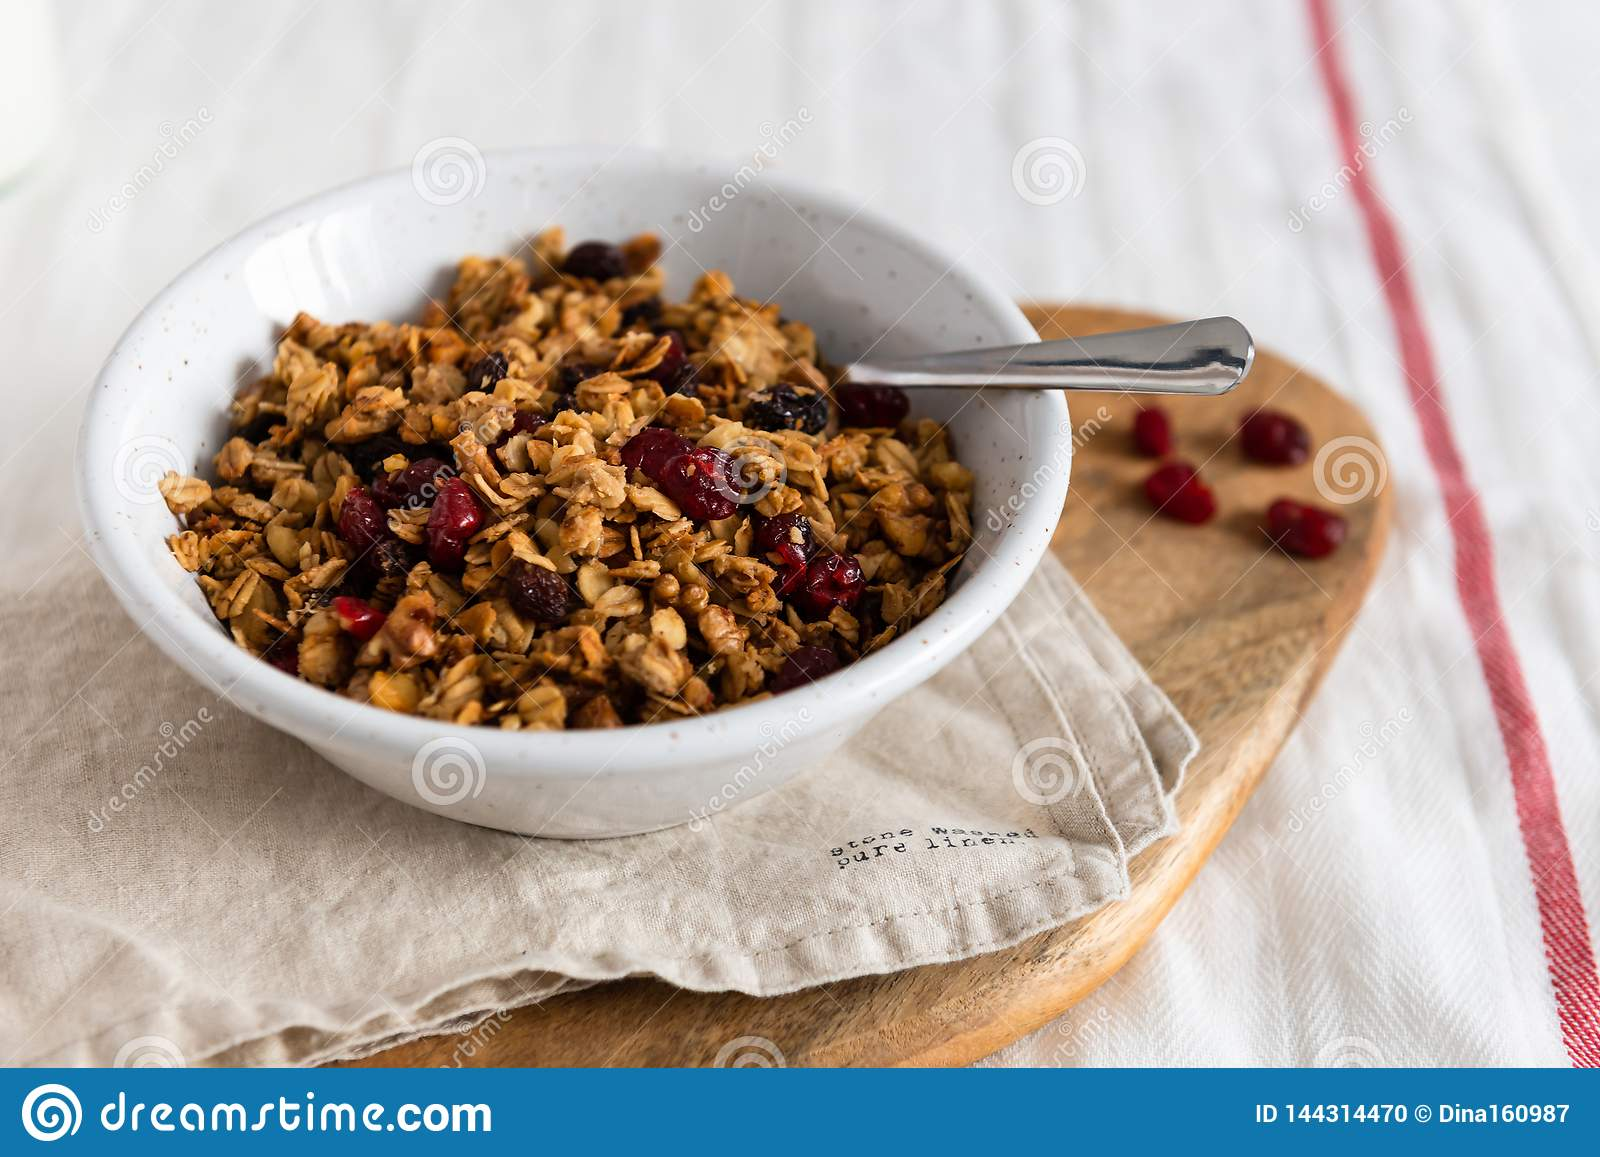 Organic homemade Granola Cereal with oats and walnuts. Oatmeal granola or muesli in bowl. Copy space